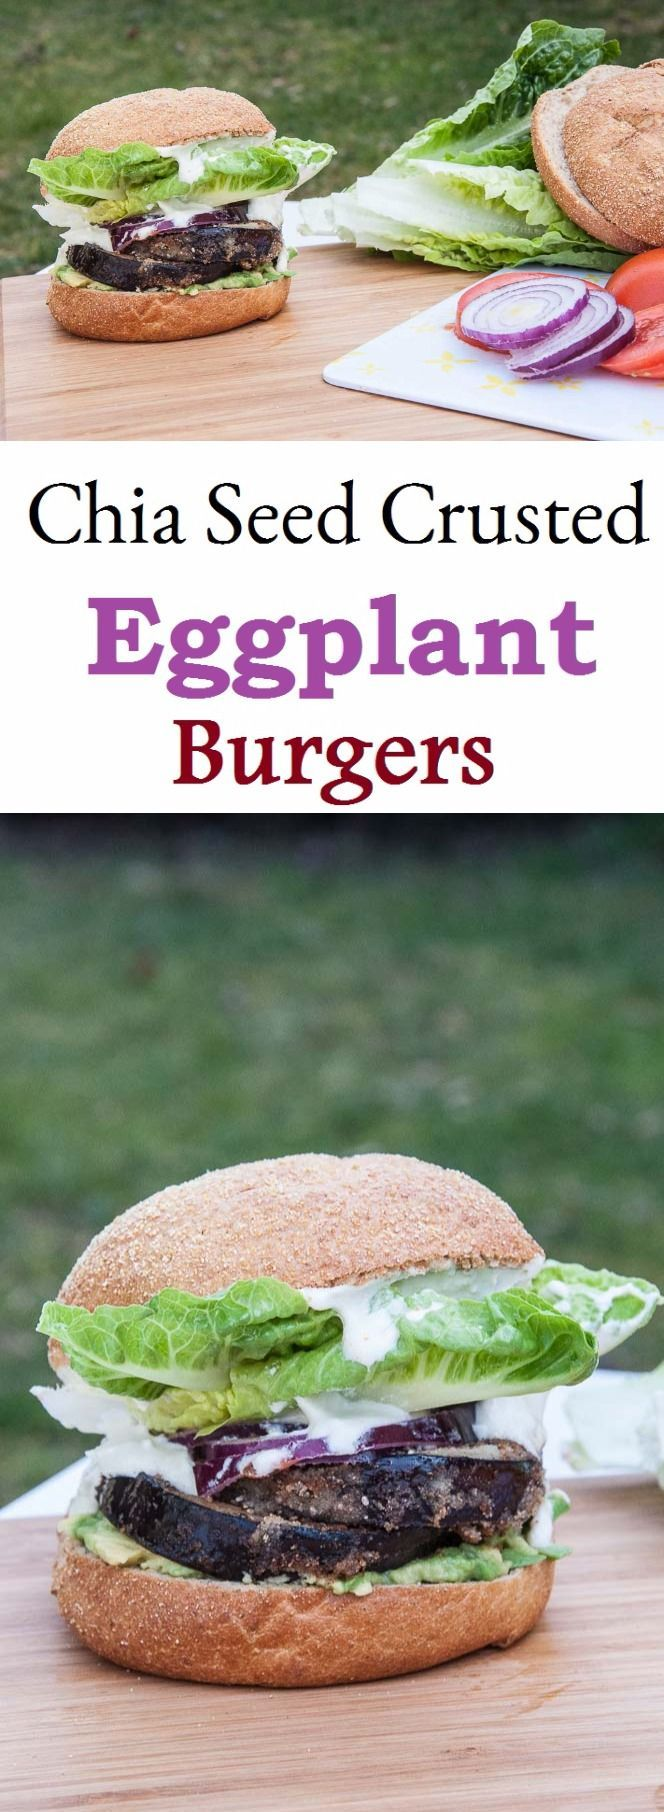 Chia crusted eggplant burgers...hmmm Love chia seeds and love eggplant . This is an interesting combination